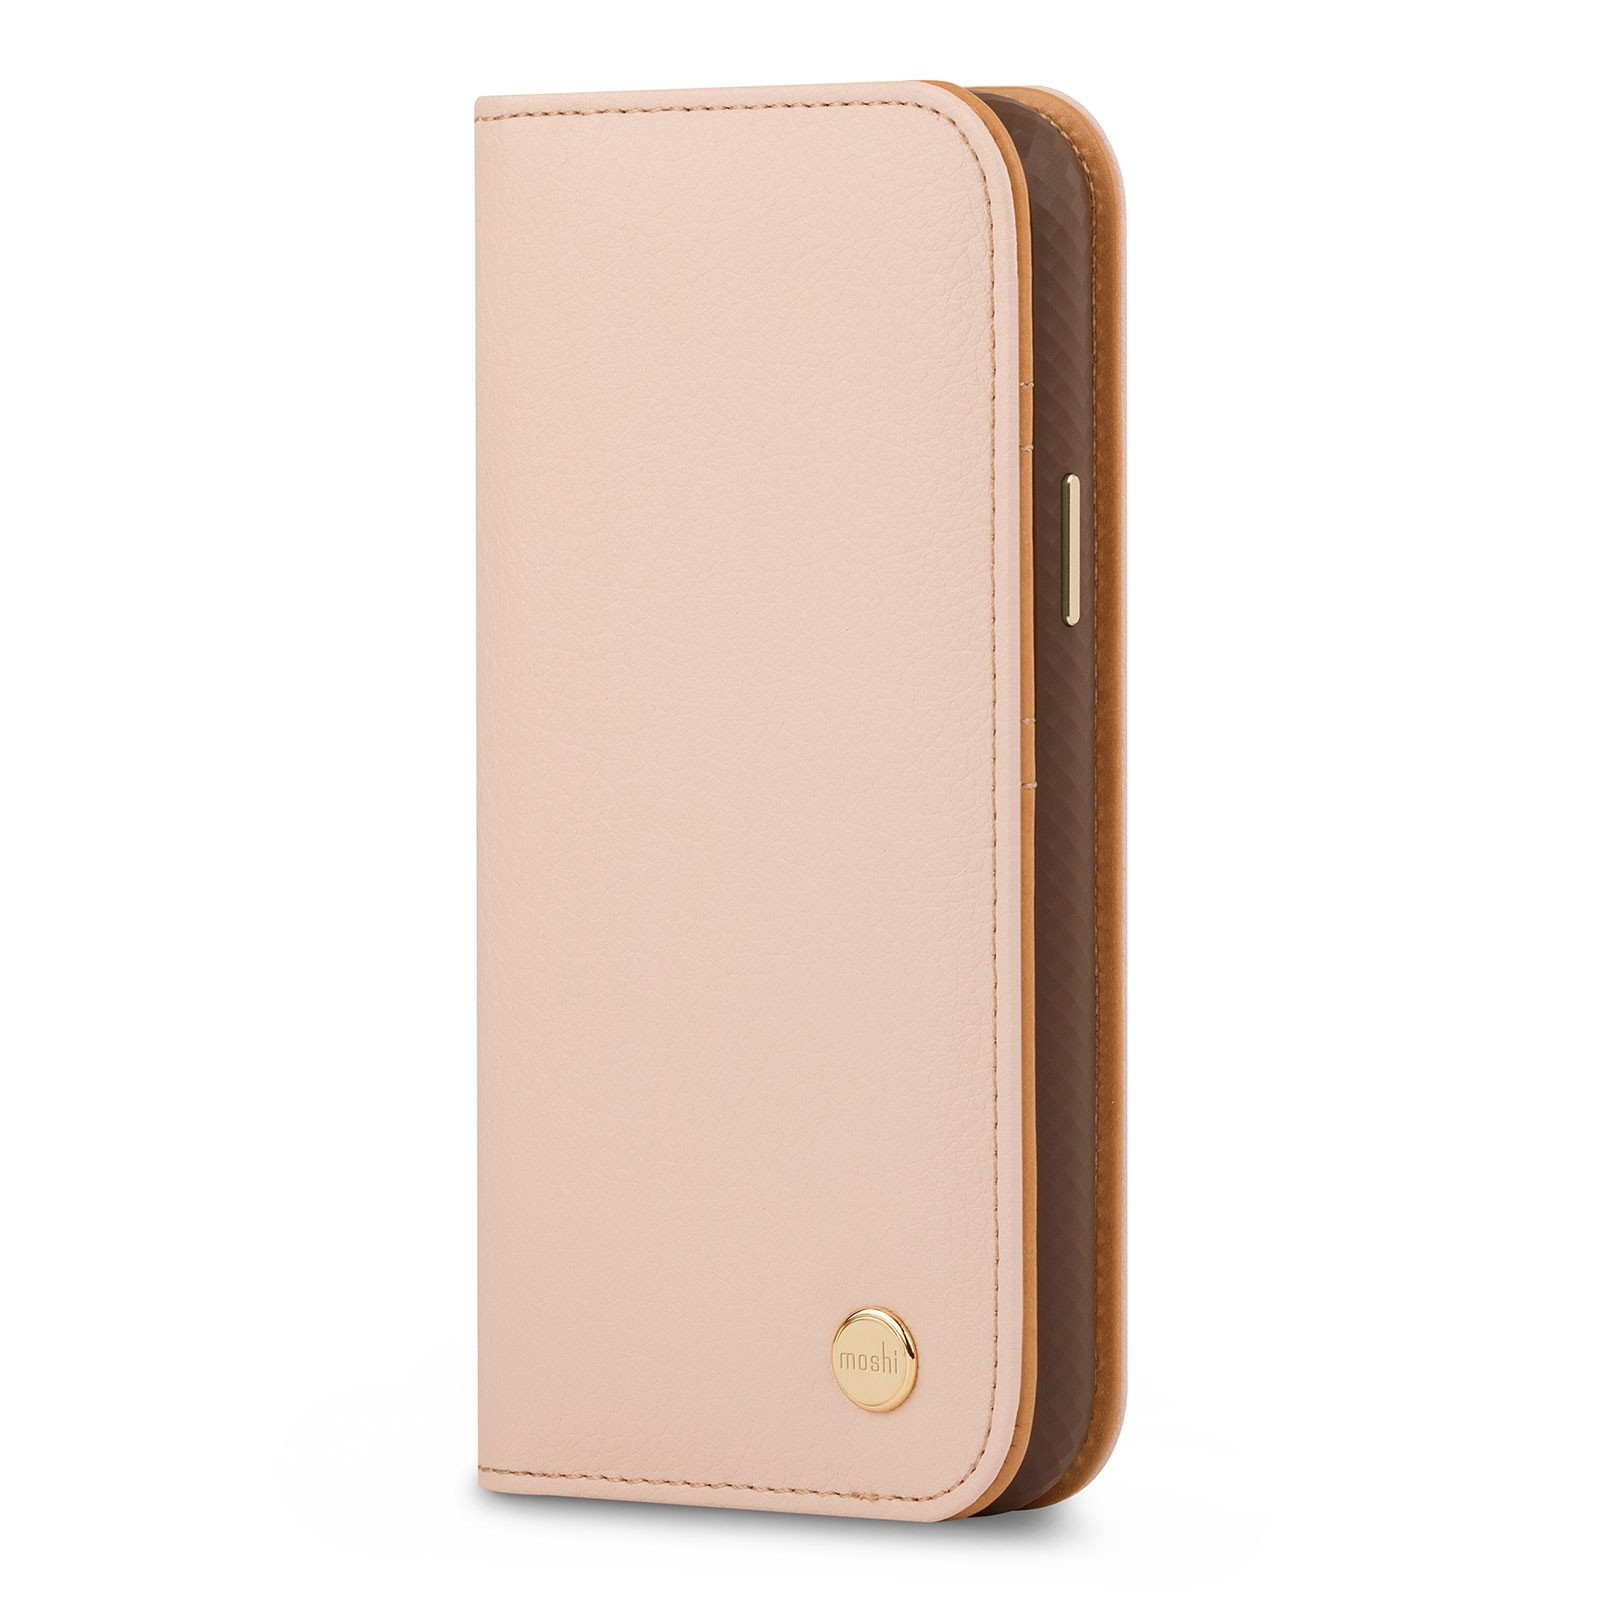 Moshi Overture Case with Detachable Magnetic Wallet - Luna Pink, 99MO091309